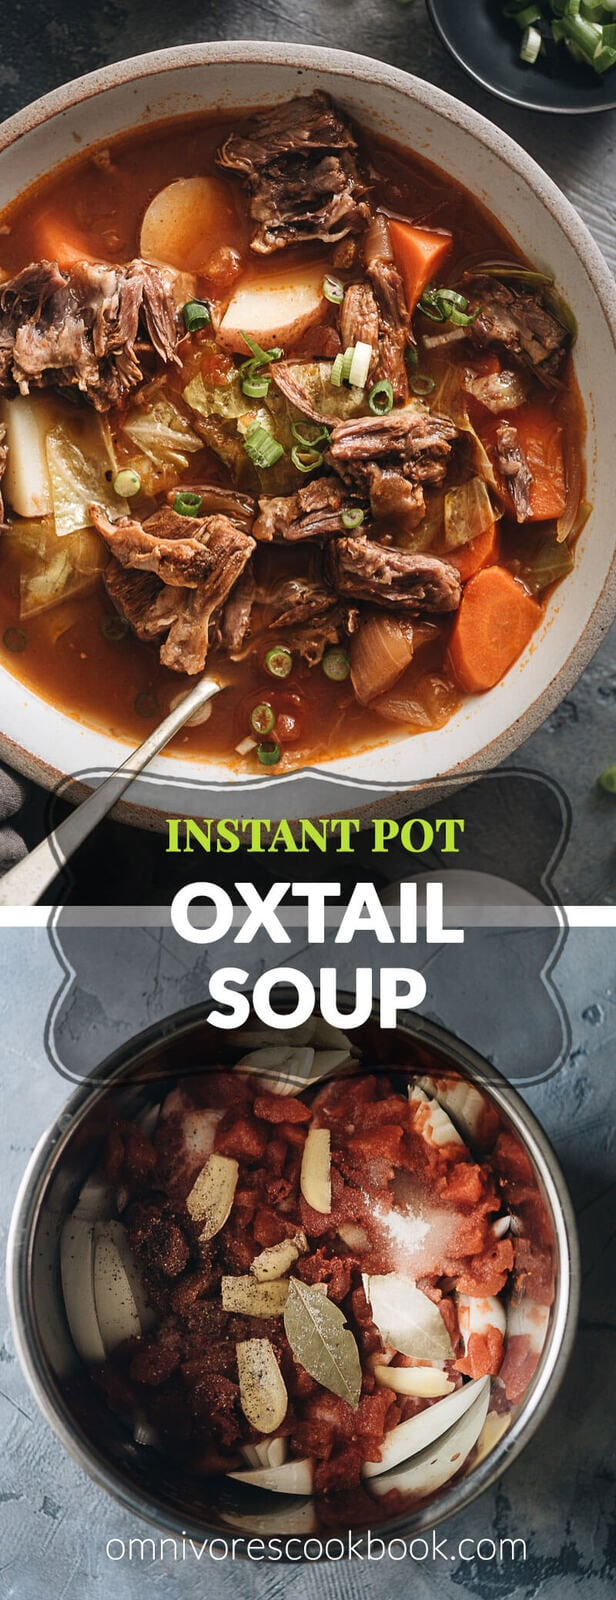 A simplified version based on my original oxtail soup recipe so you can use minimal prep and time to cook everything in one pot. No searing or par-boiling required. The oxtails will turn out soft like butter and the soup rich and hearty. Both Instant Pot and stovetop pressure cooker methods are included. {Gluten-Free}